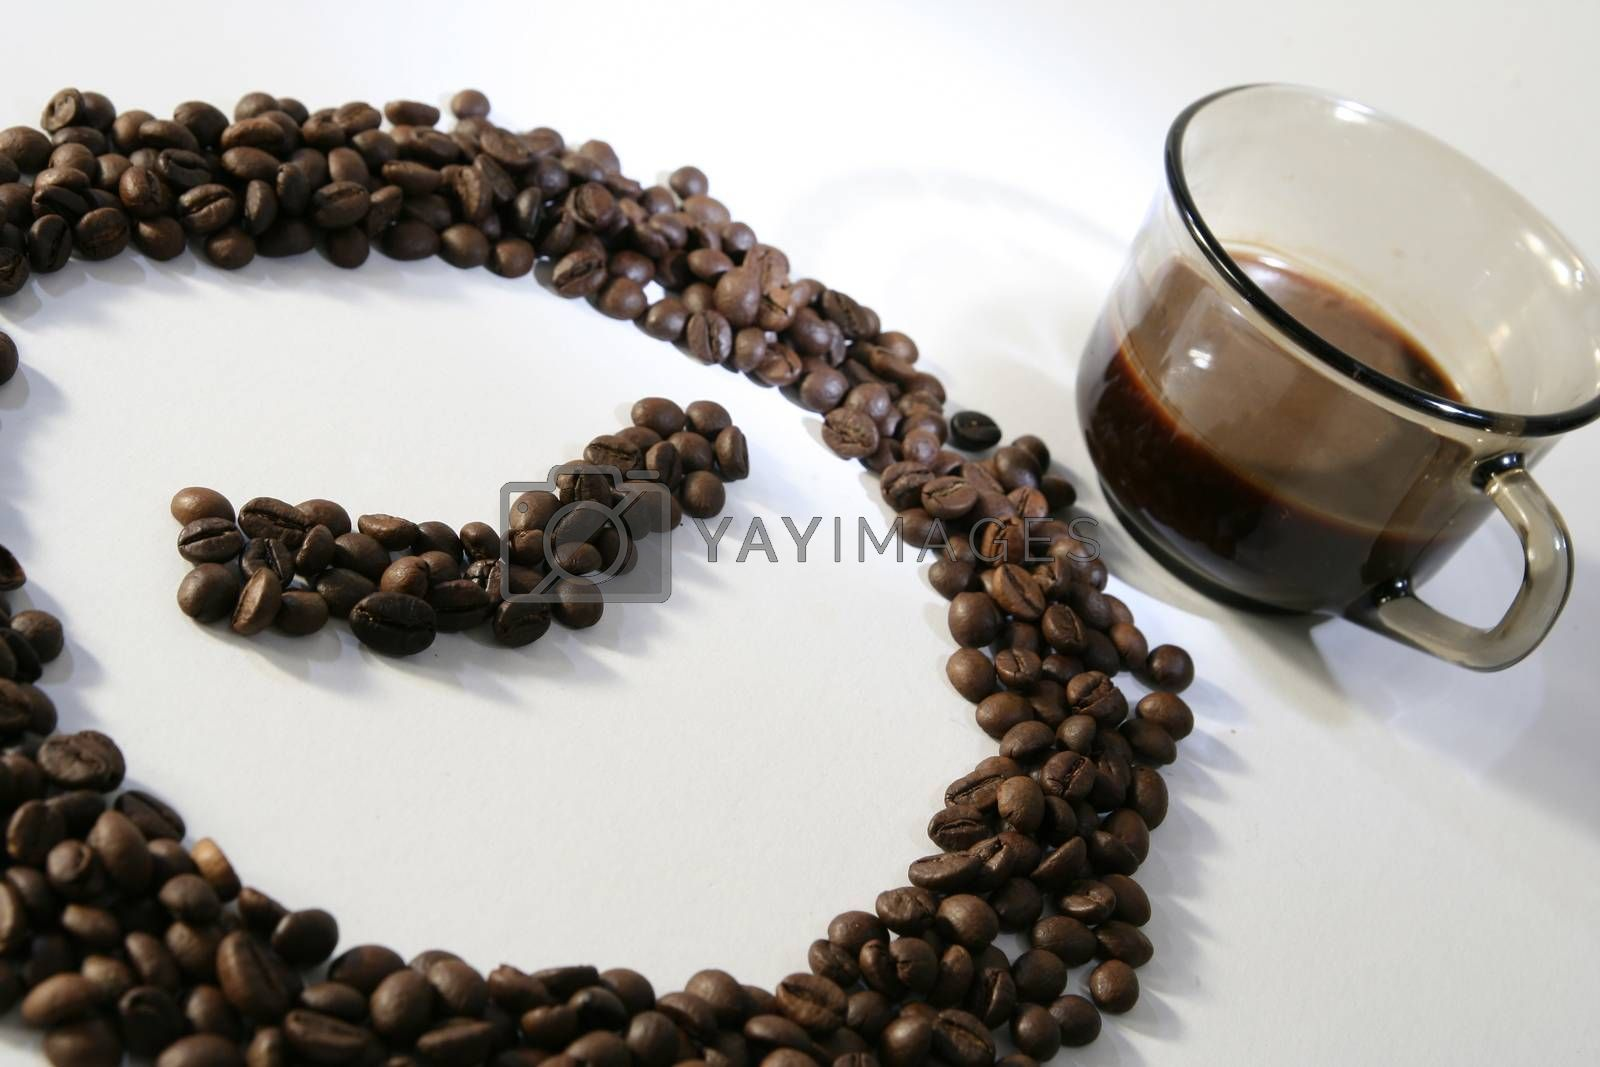 Claock made from coffee beans